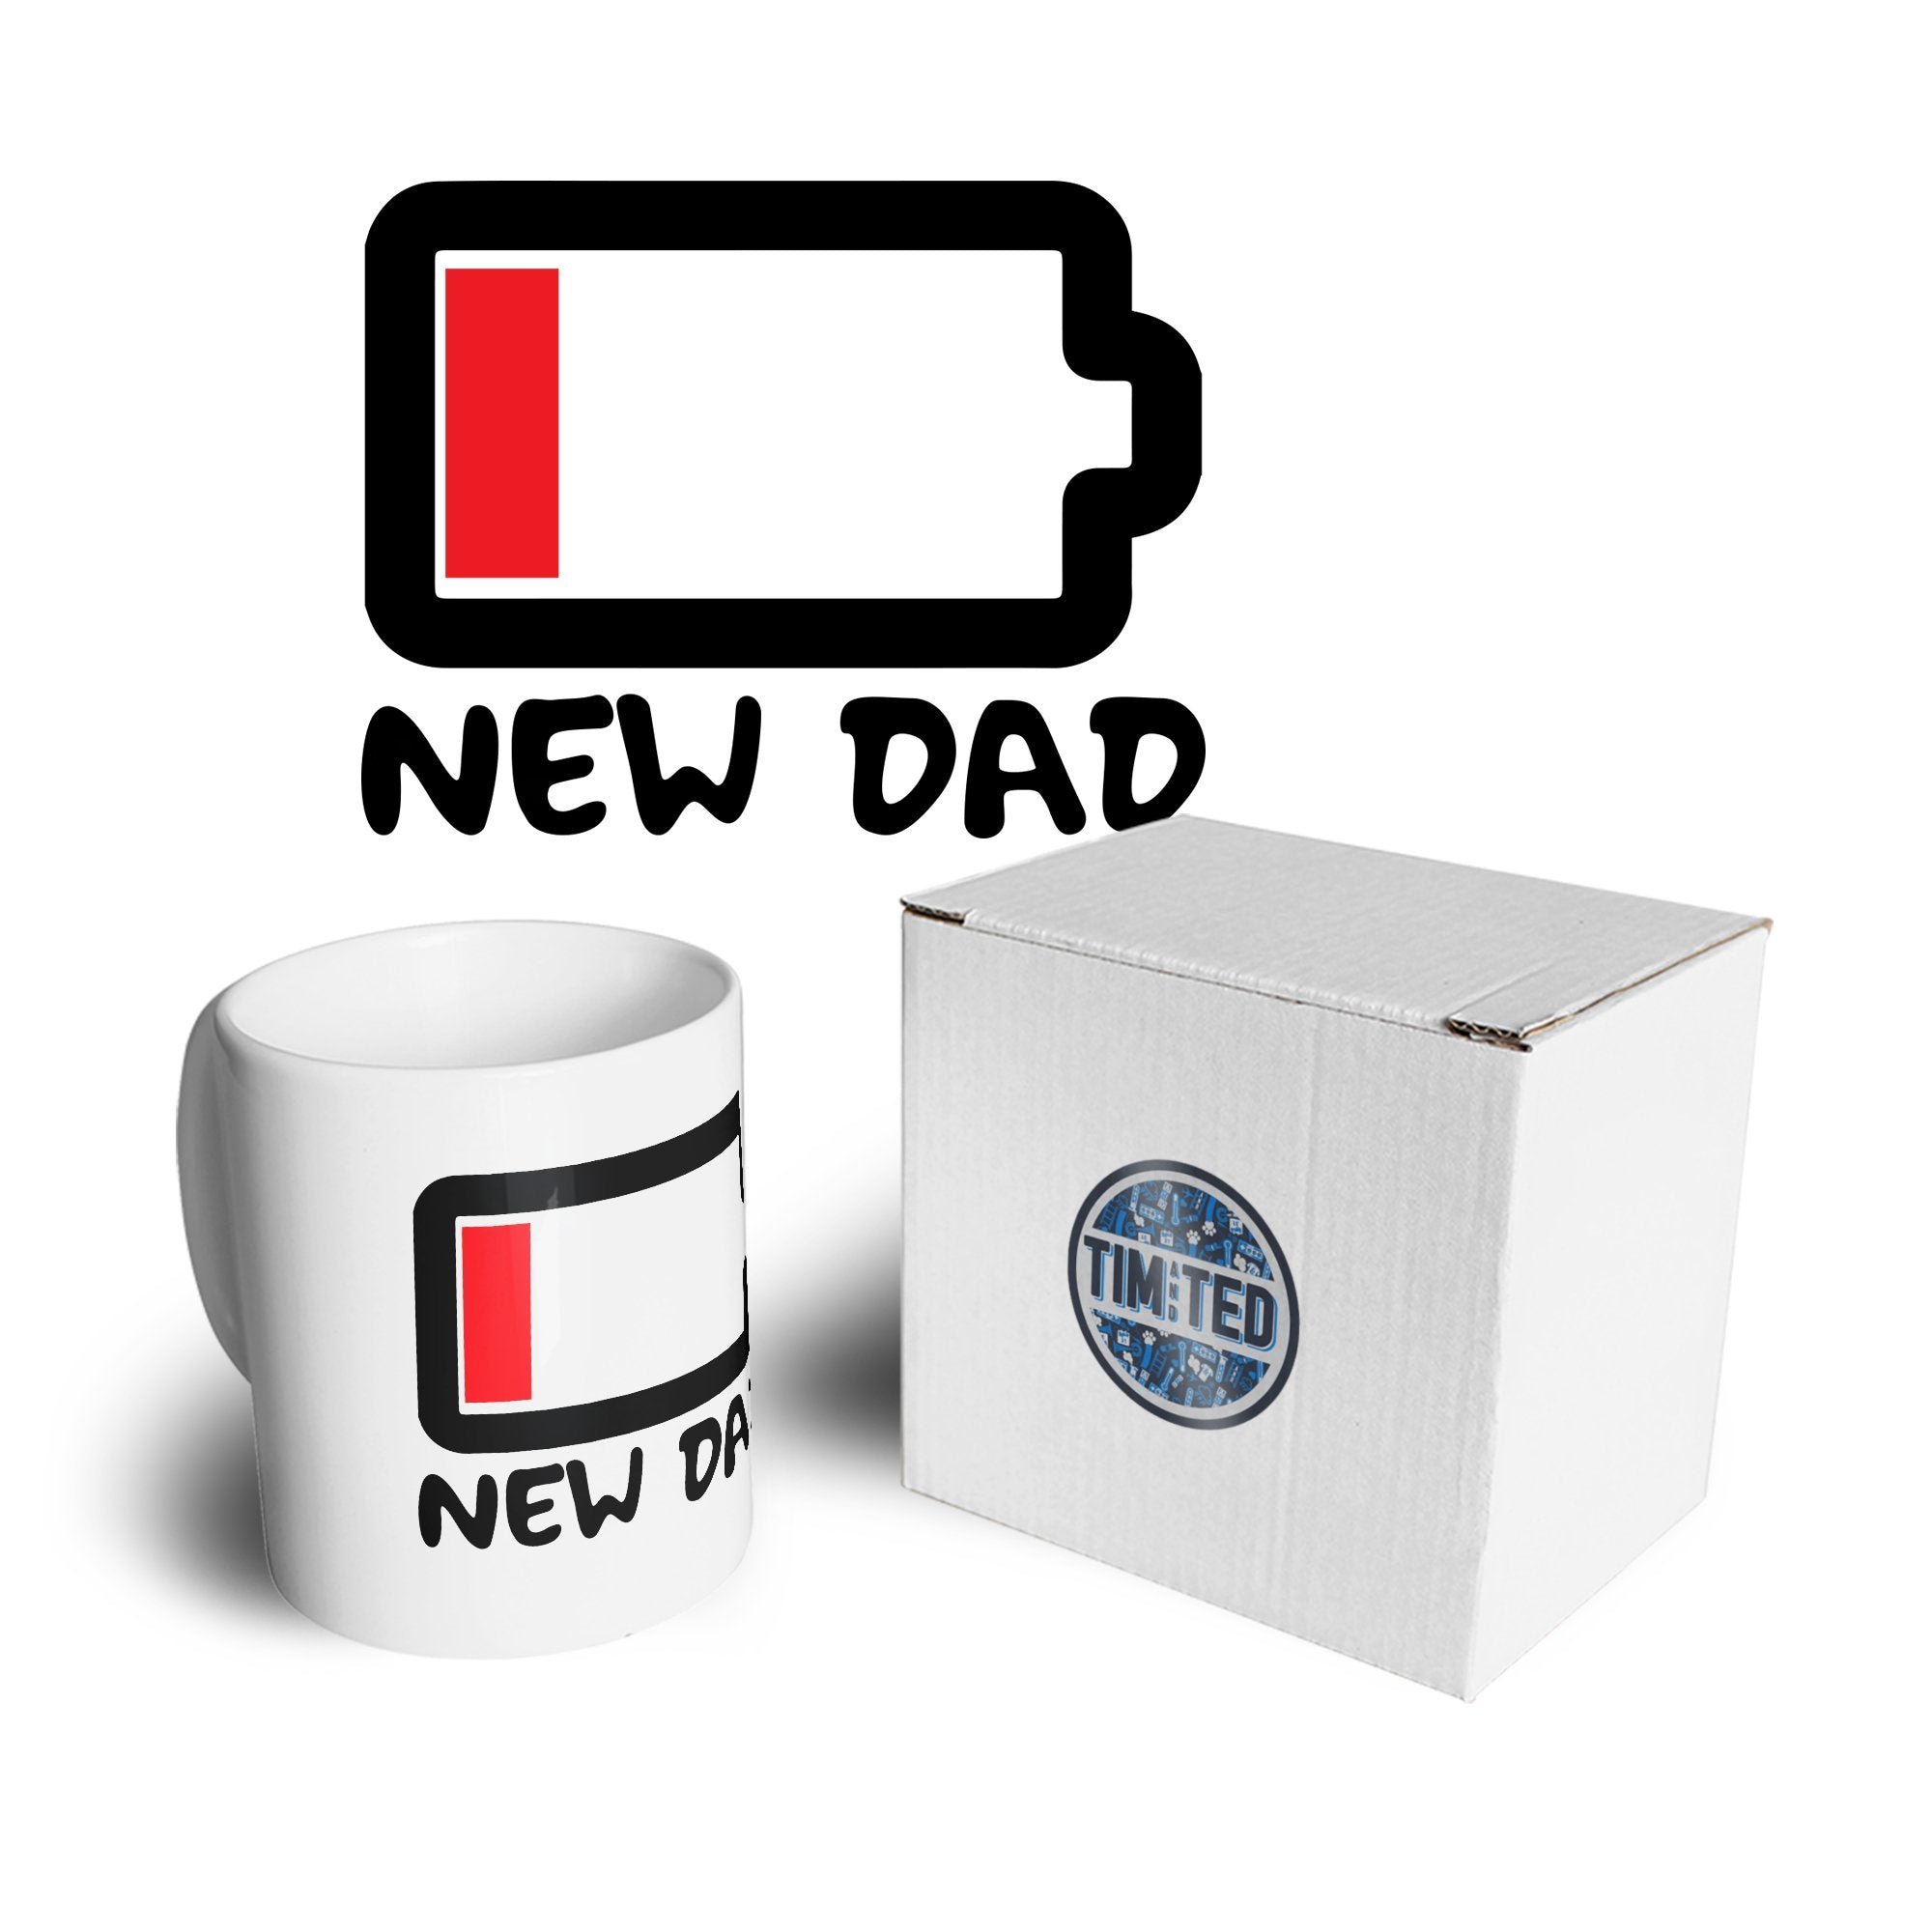 New Dad Mug Low Battery Remaining Novelty Joke Coffee Tea Cup